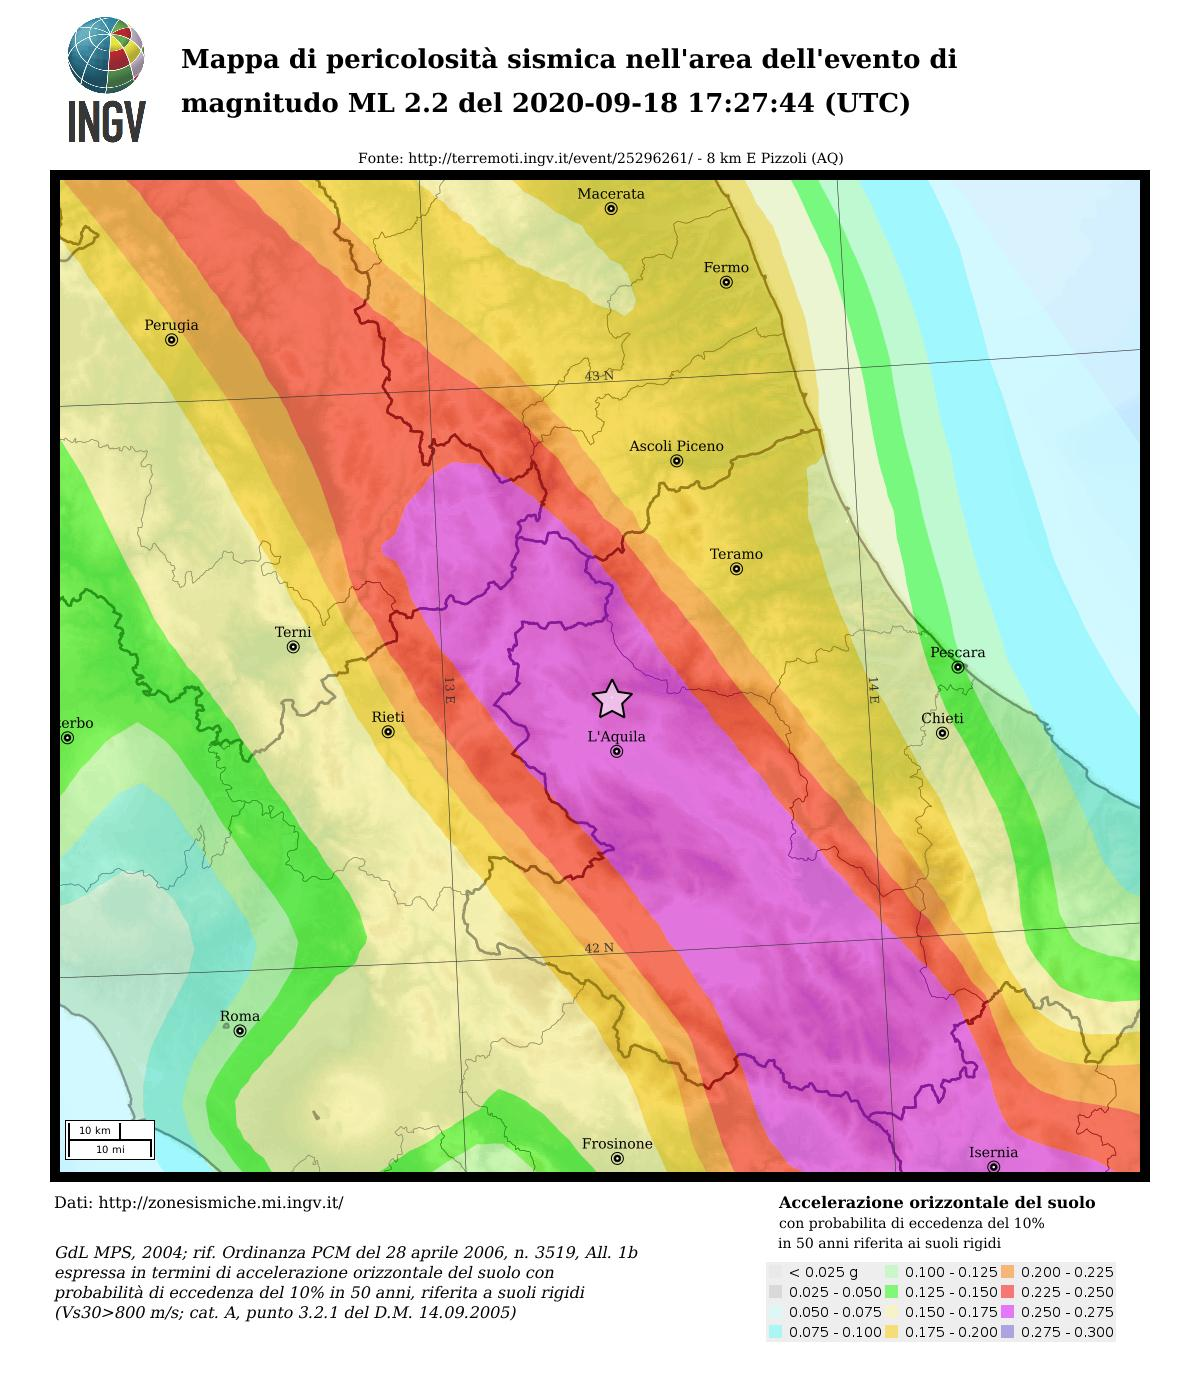 Seismic hazard map